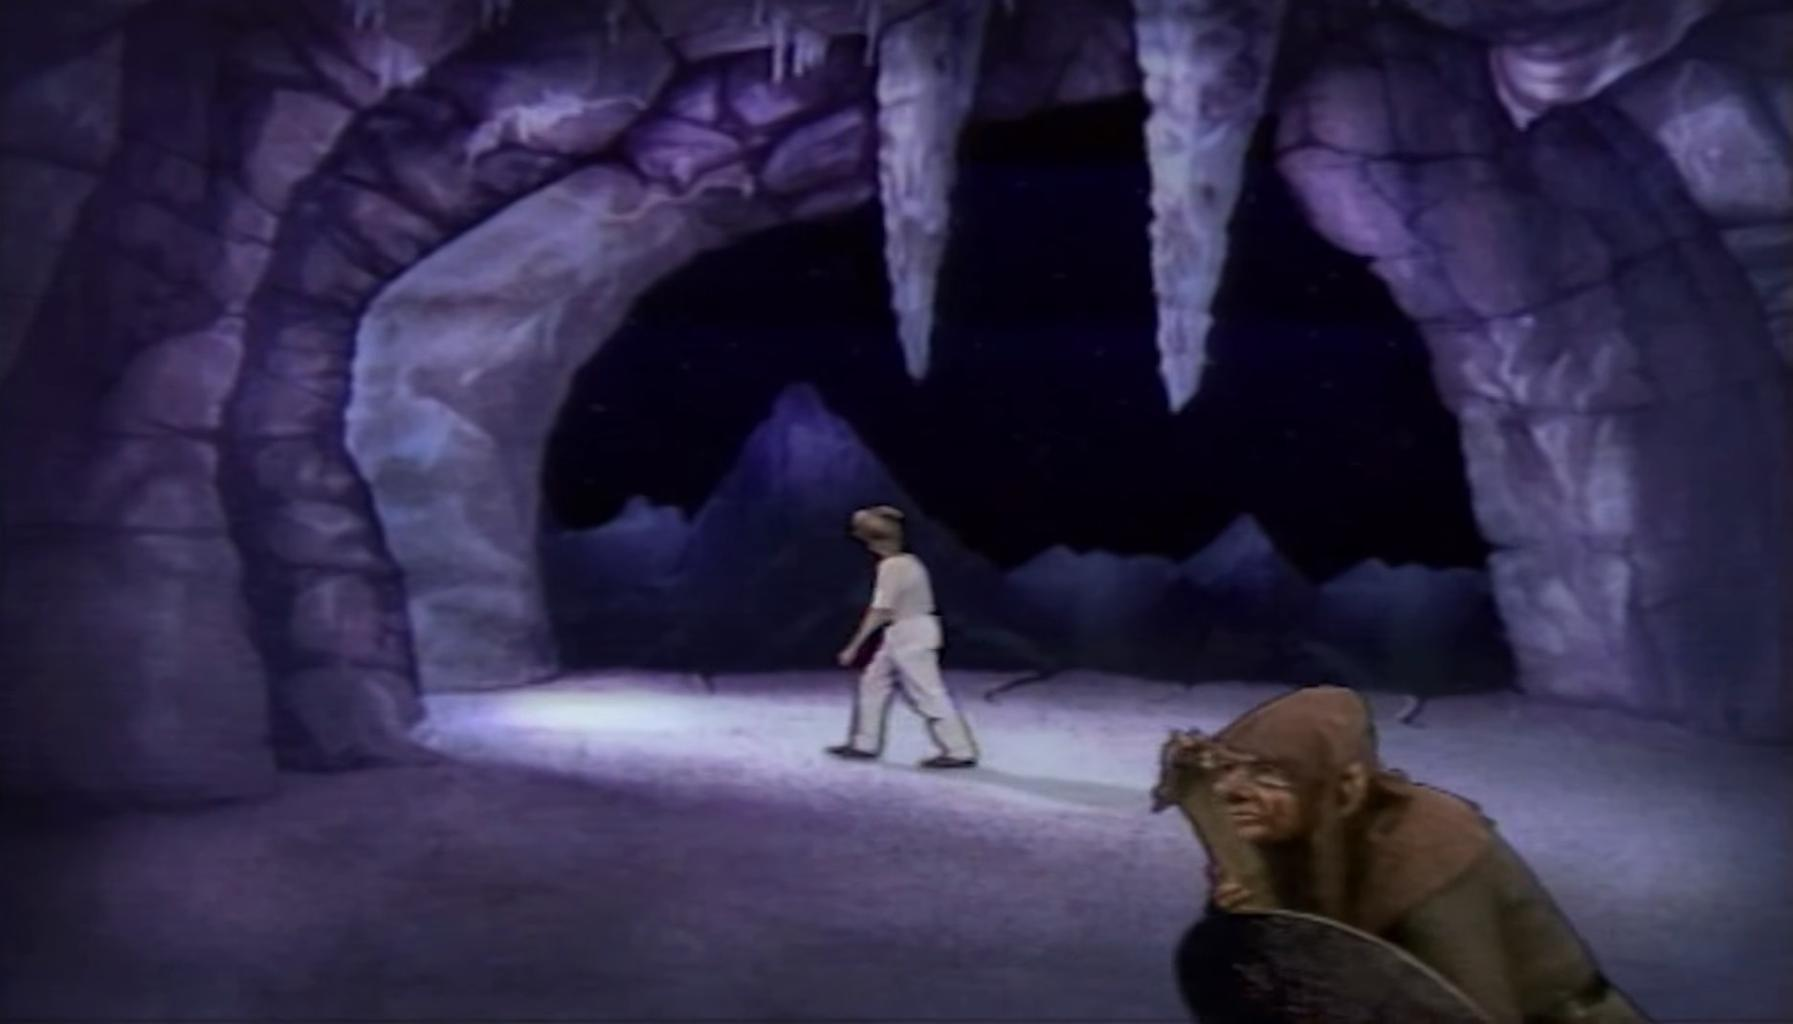 Series 3 Quest 2 - Level 2 - goblin in foreground